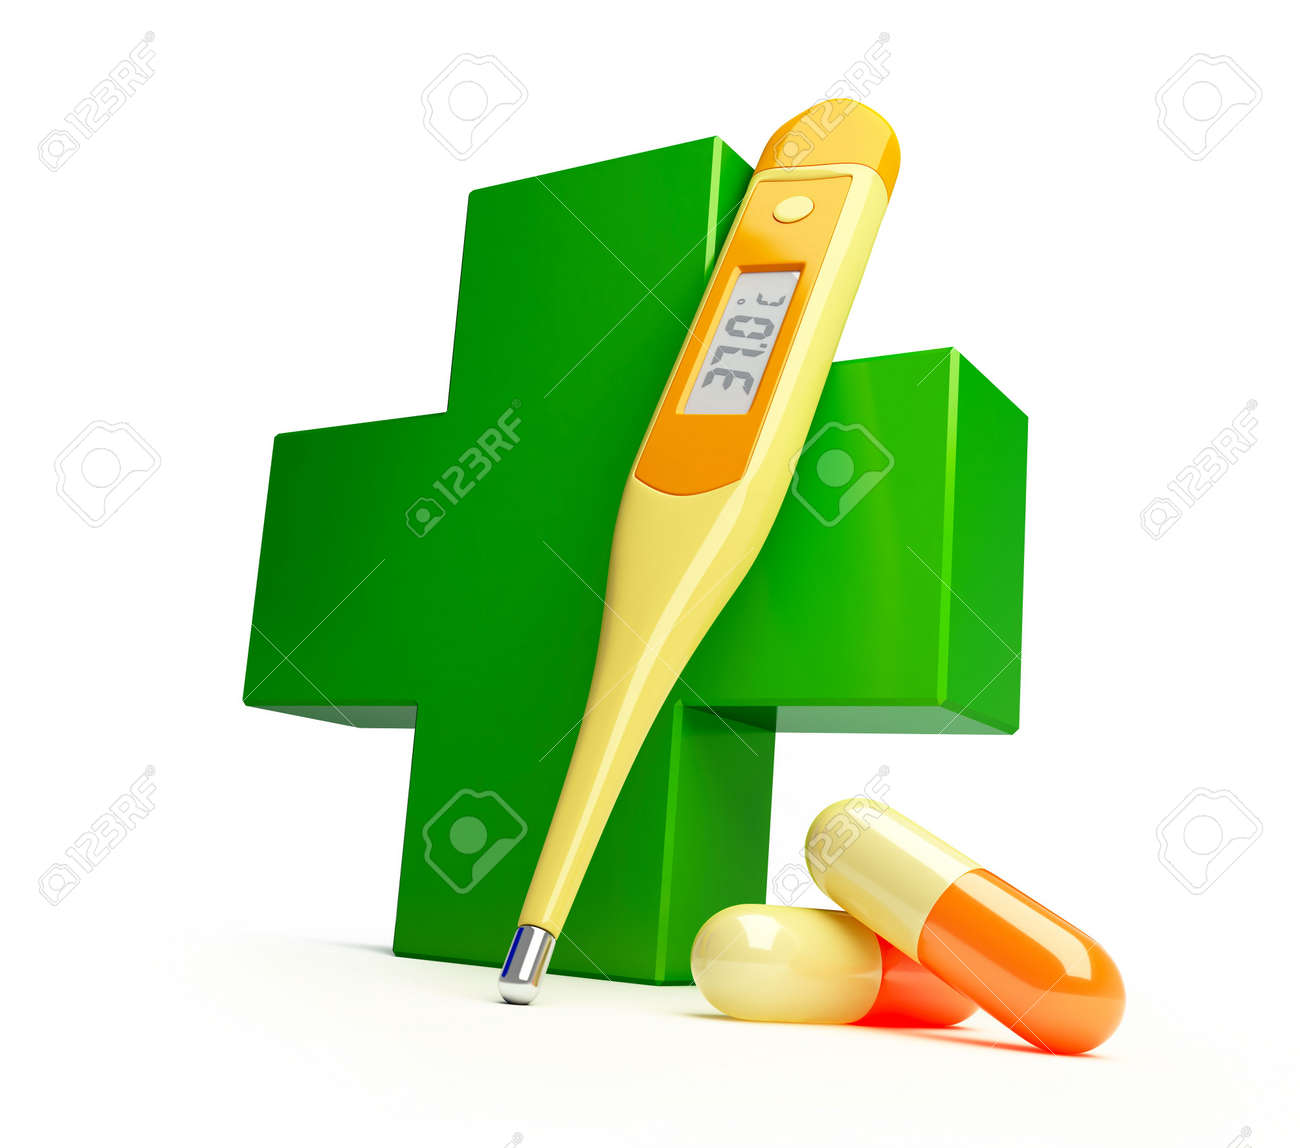 Pharmacy cross it is isolated on a white background Stock Photo - 5385060